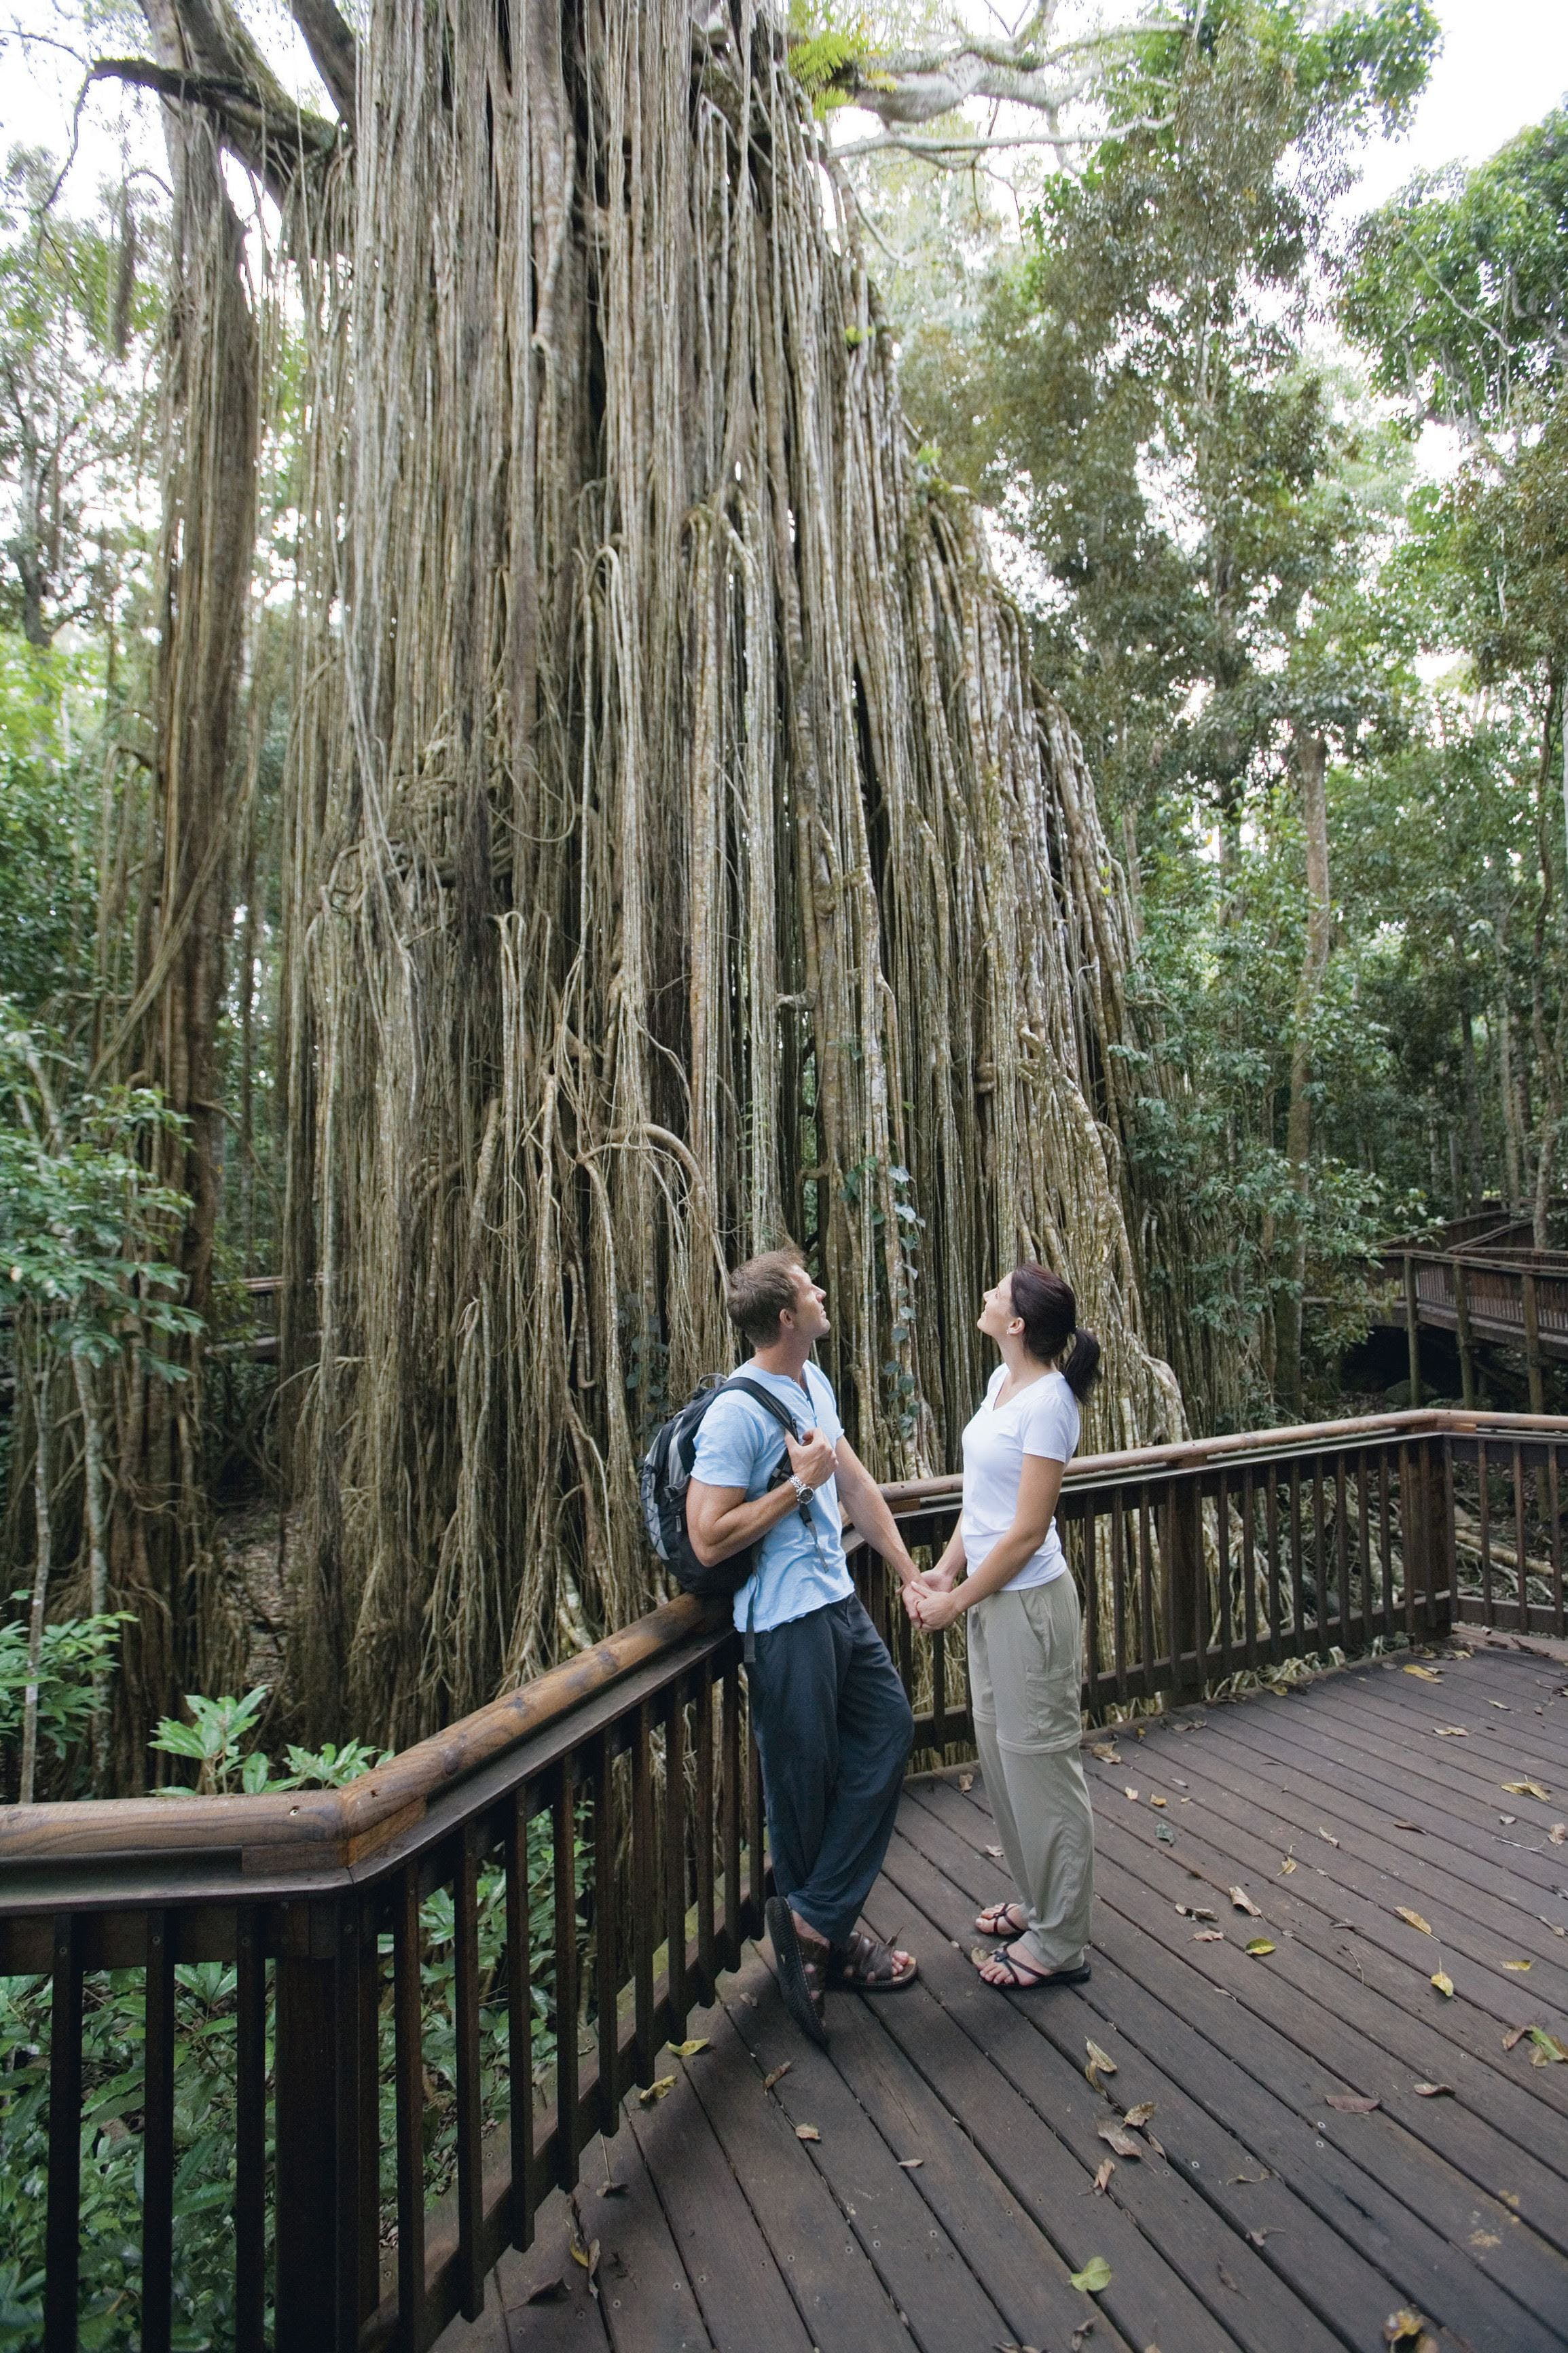 Curtain Fig Tree Yungaburra - Find Attractions